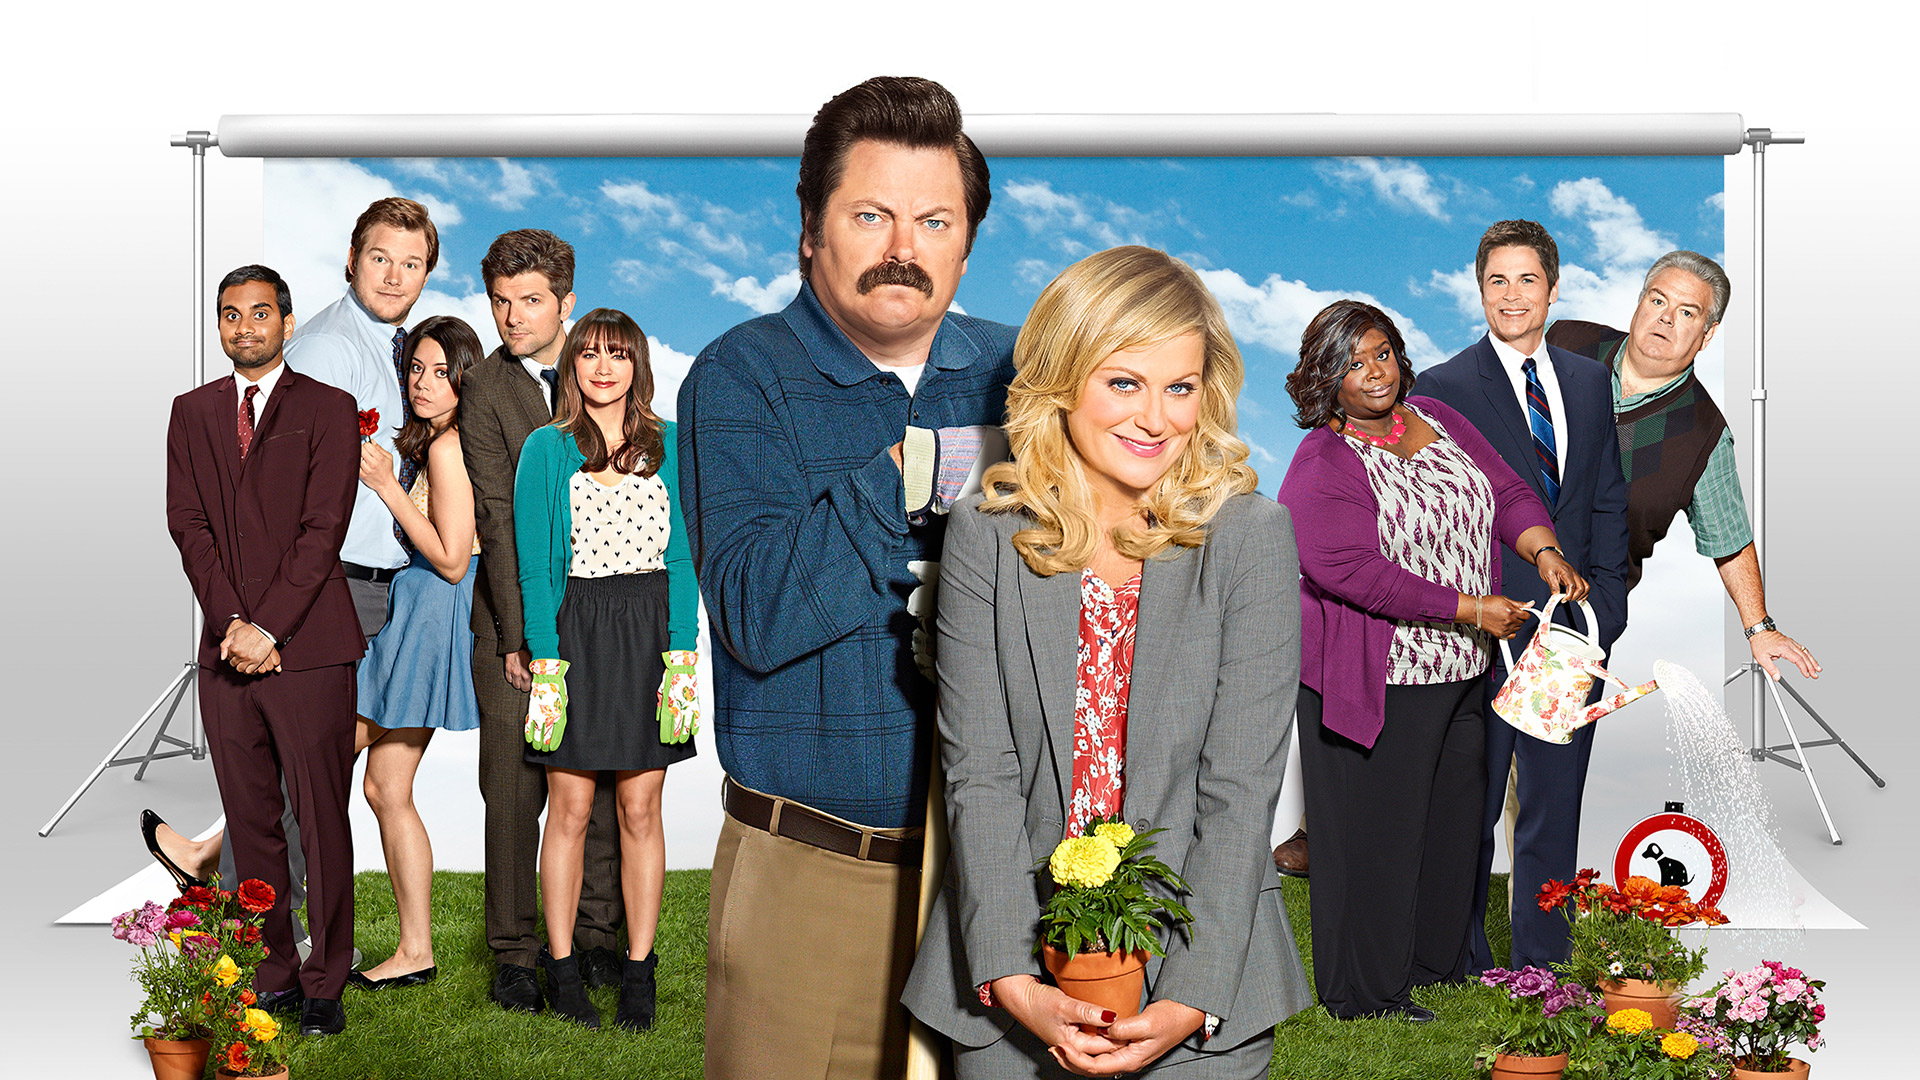 NBC renews Parks and Recreation, but cancels four series